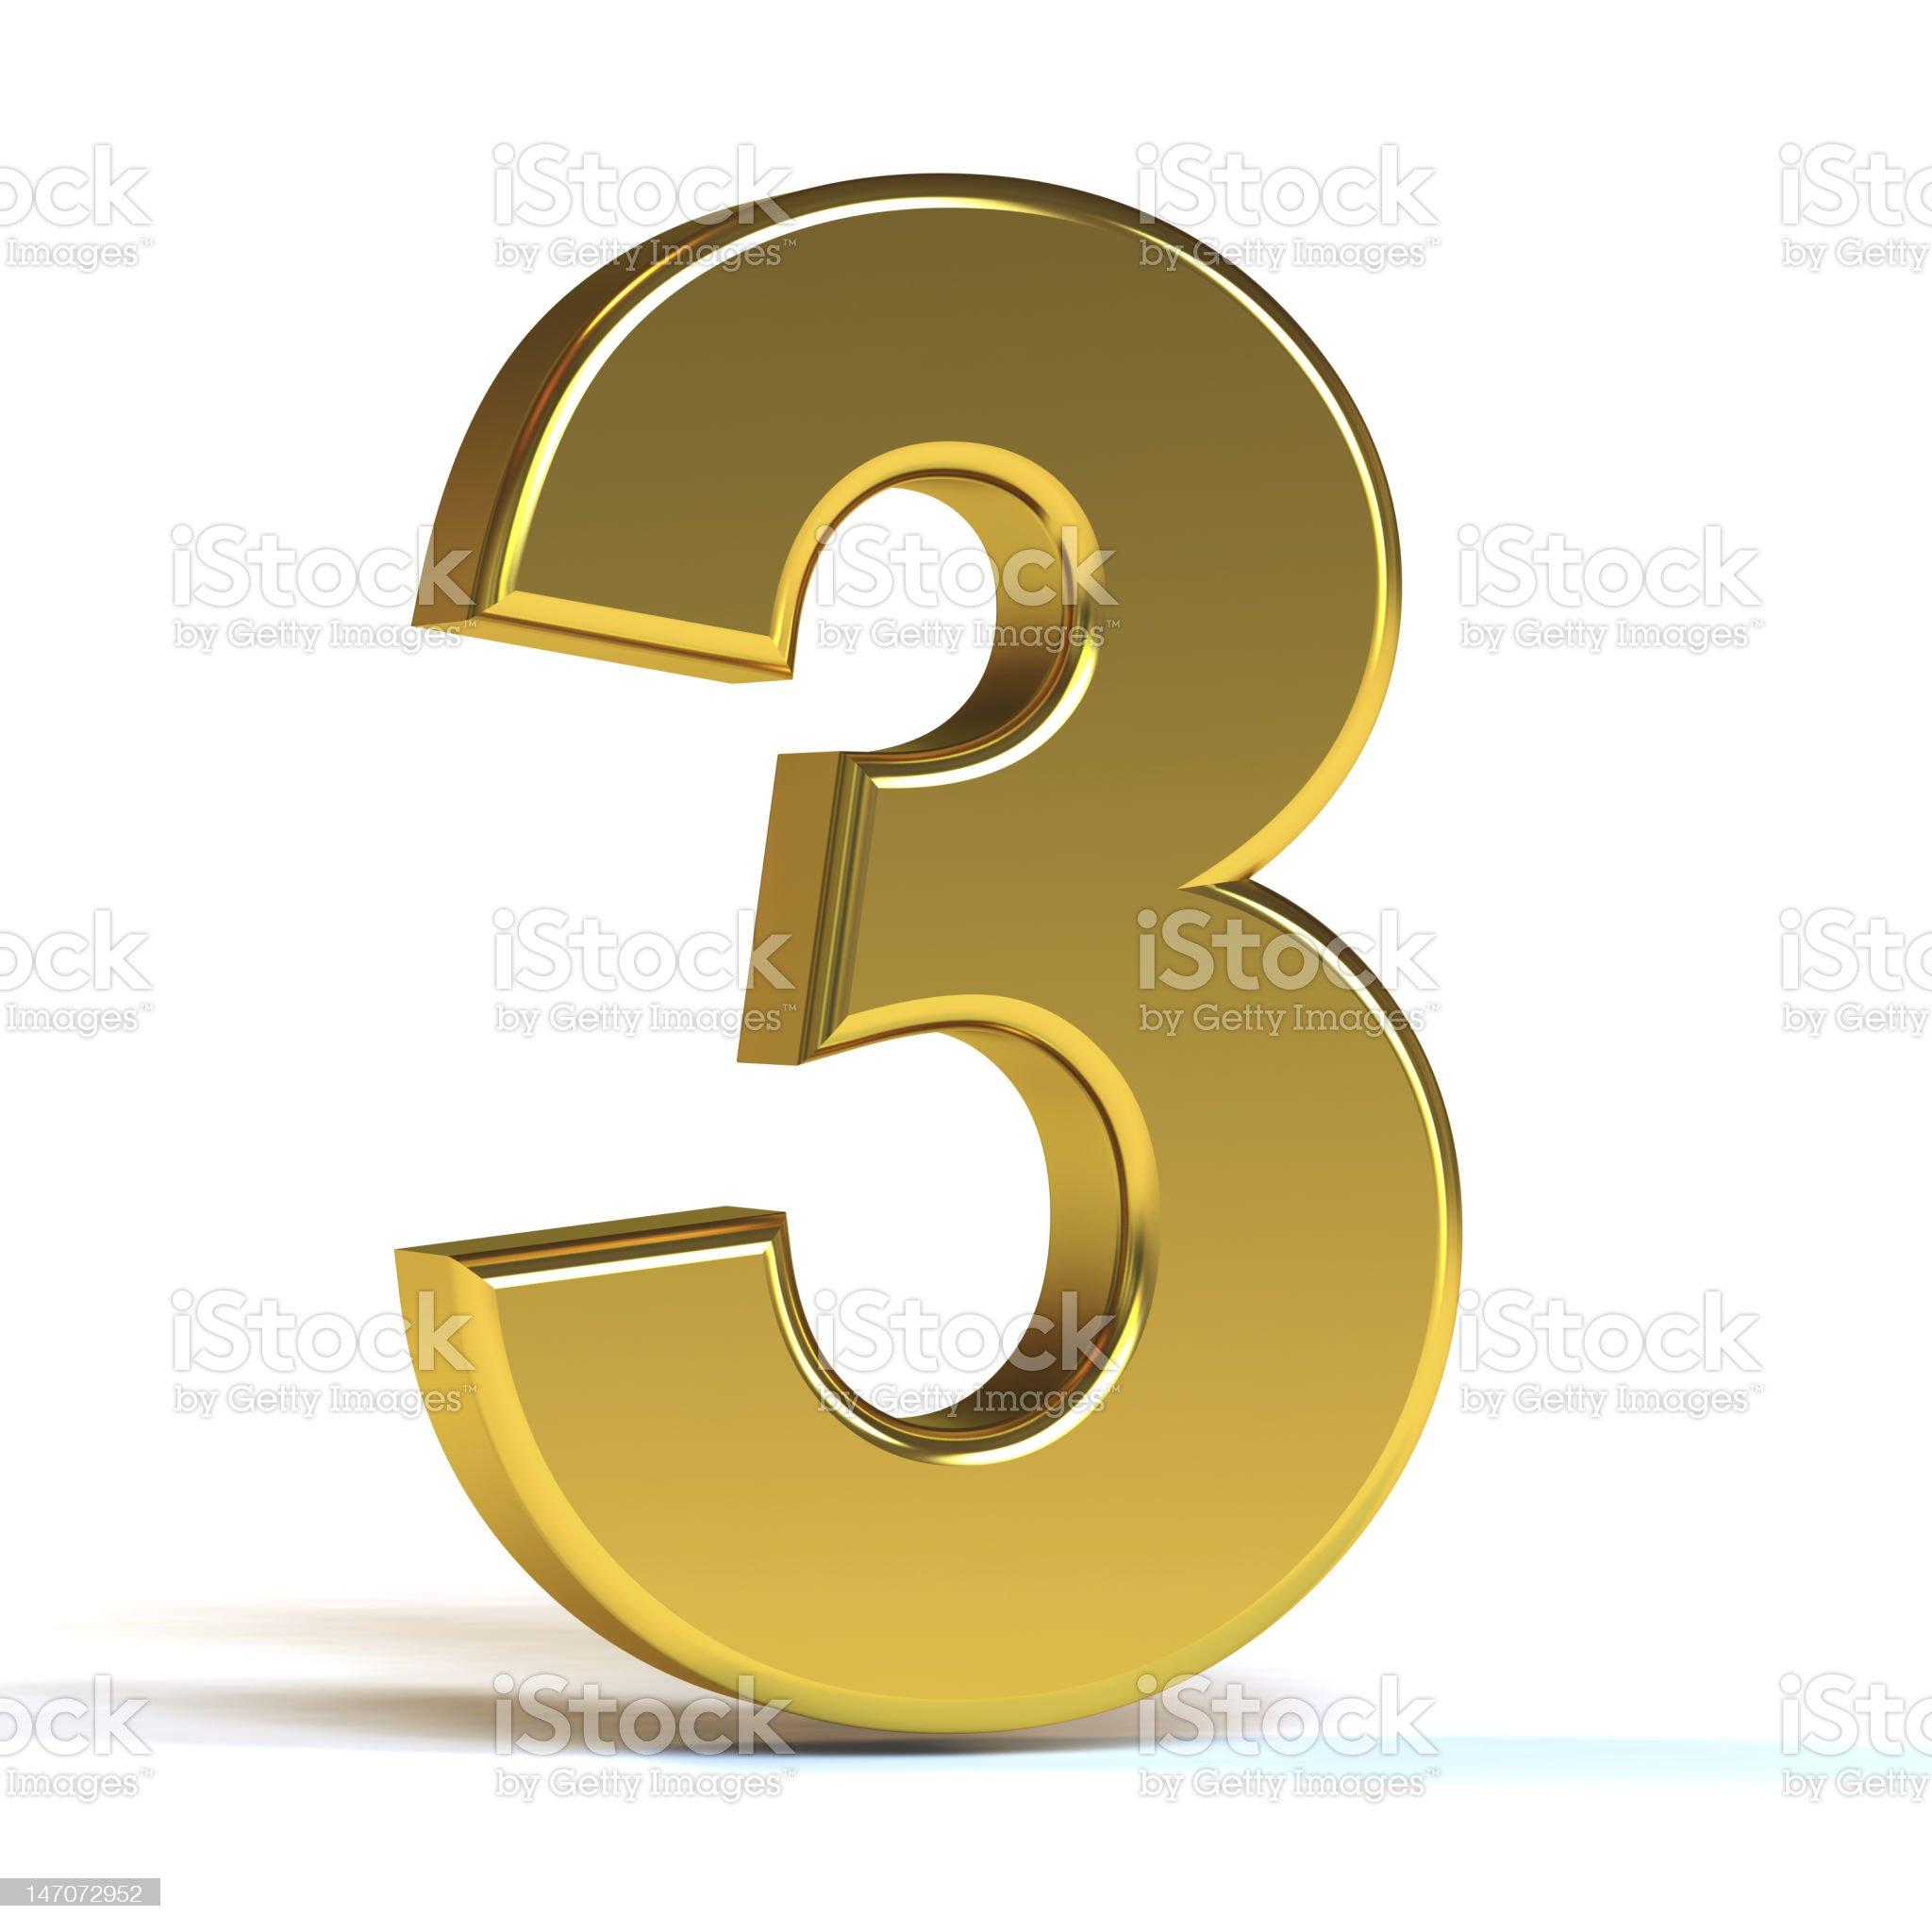 The Number Three - Gold royalty-free stock photo